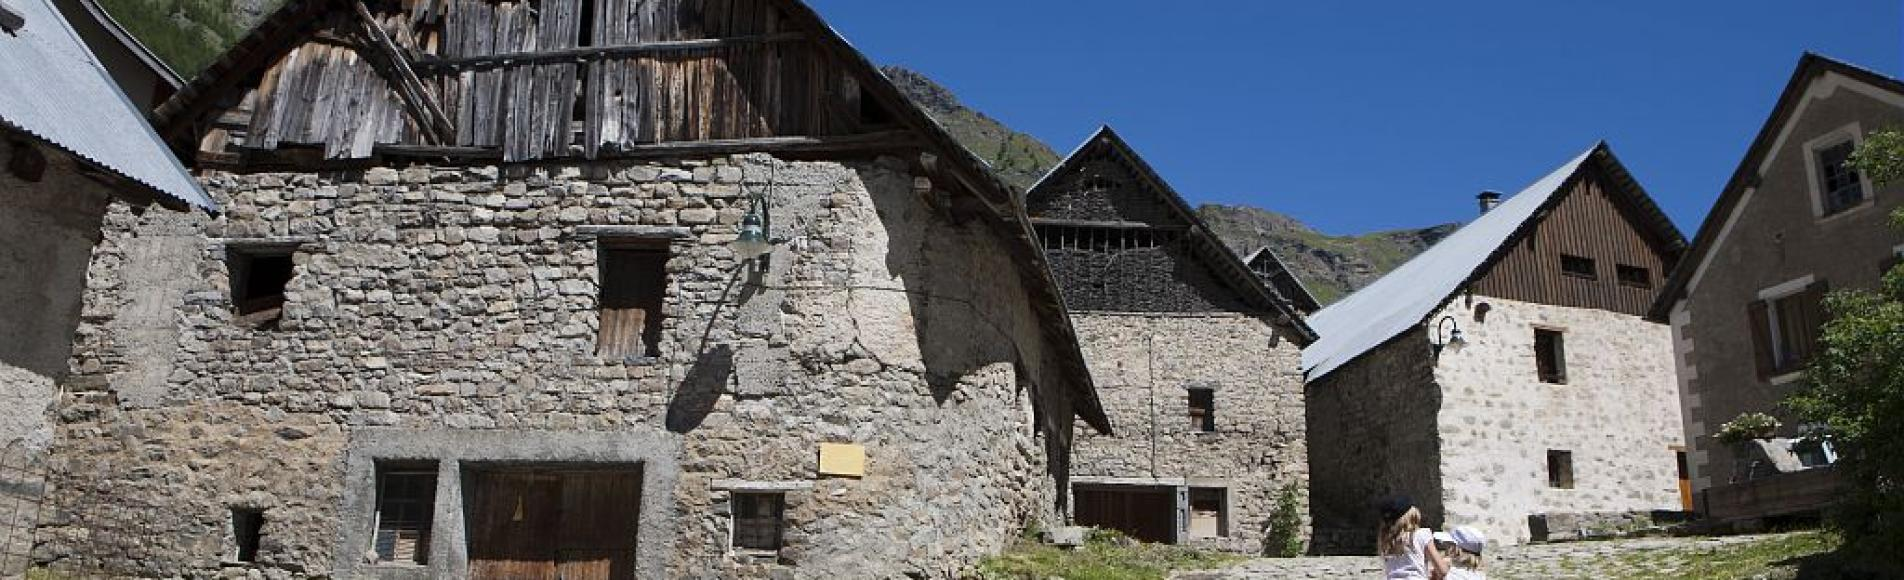 Village de Prapic ©Saulay Pascal - Parc national des Ecrins